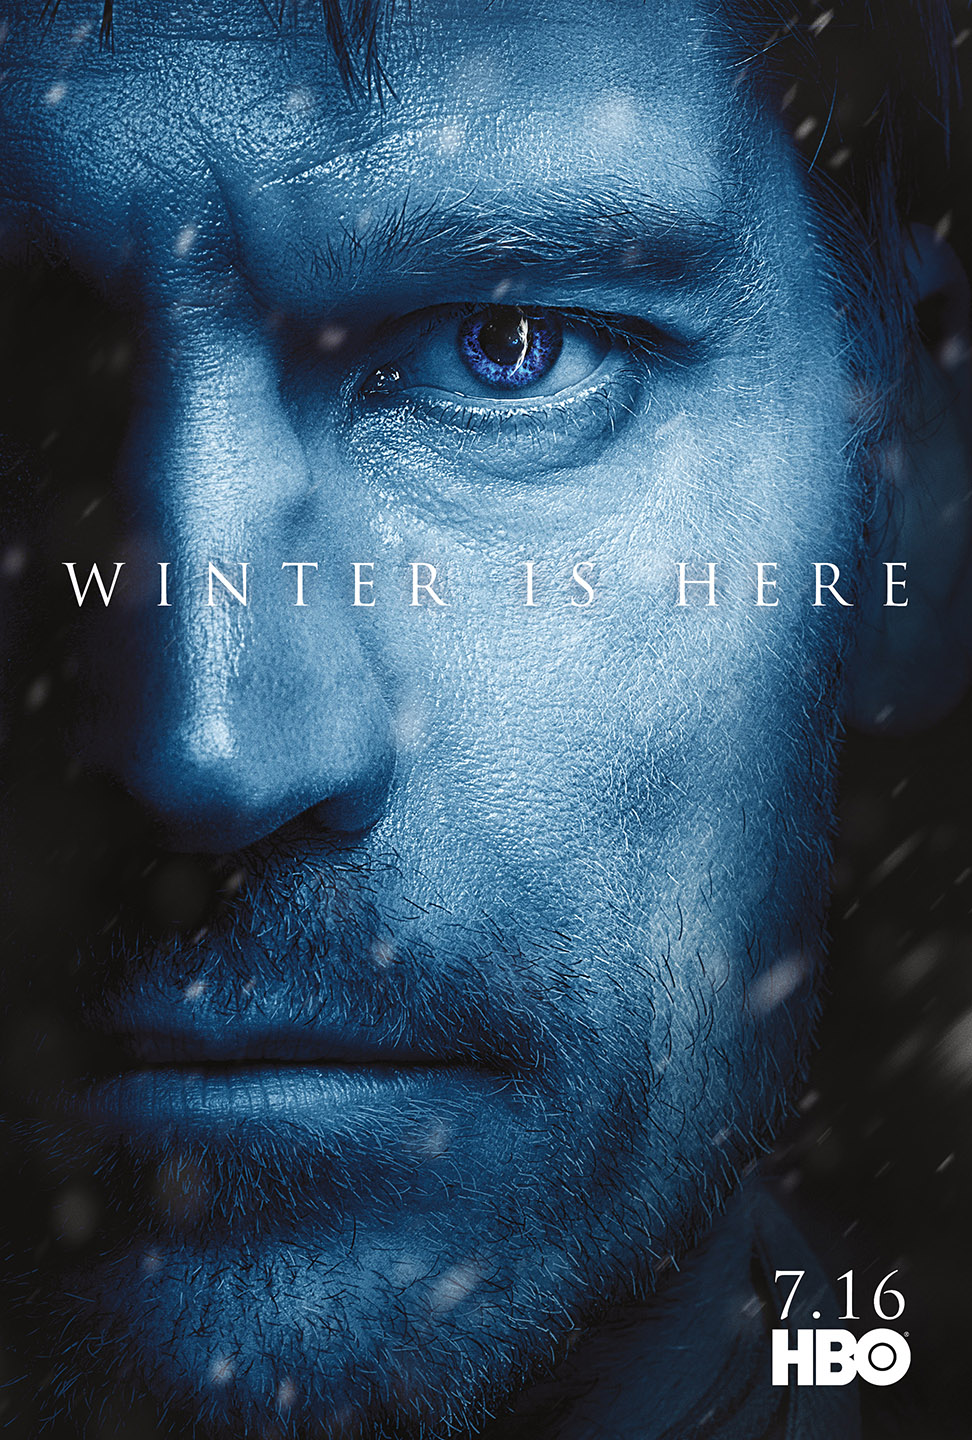 character posters for game of thrones season 7 revealed winter is here watchers on the wall. Black Bedroom Furniture Sets. Home Design Ideas